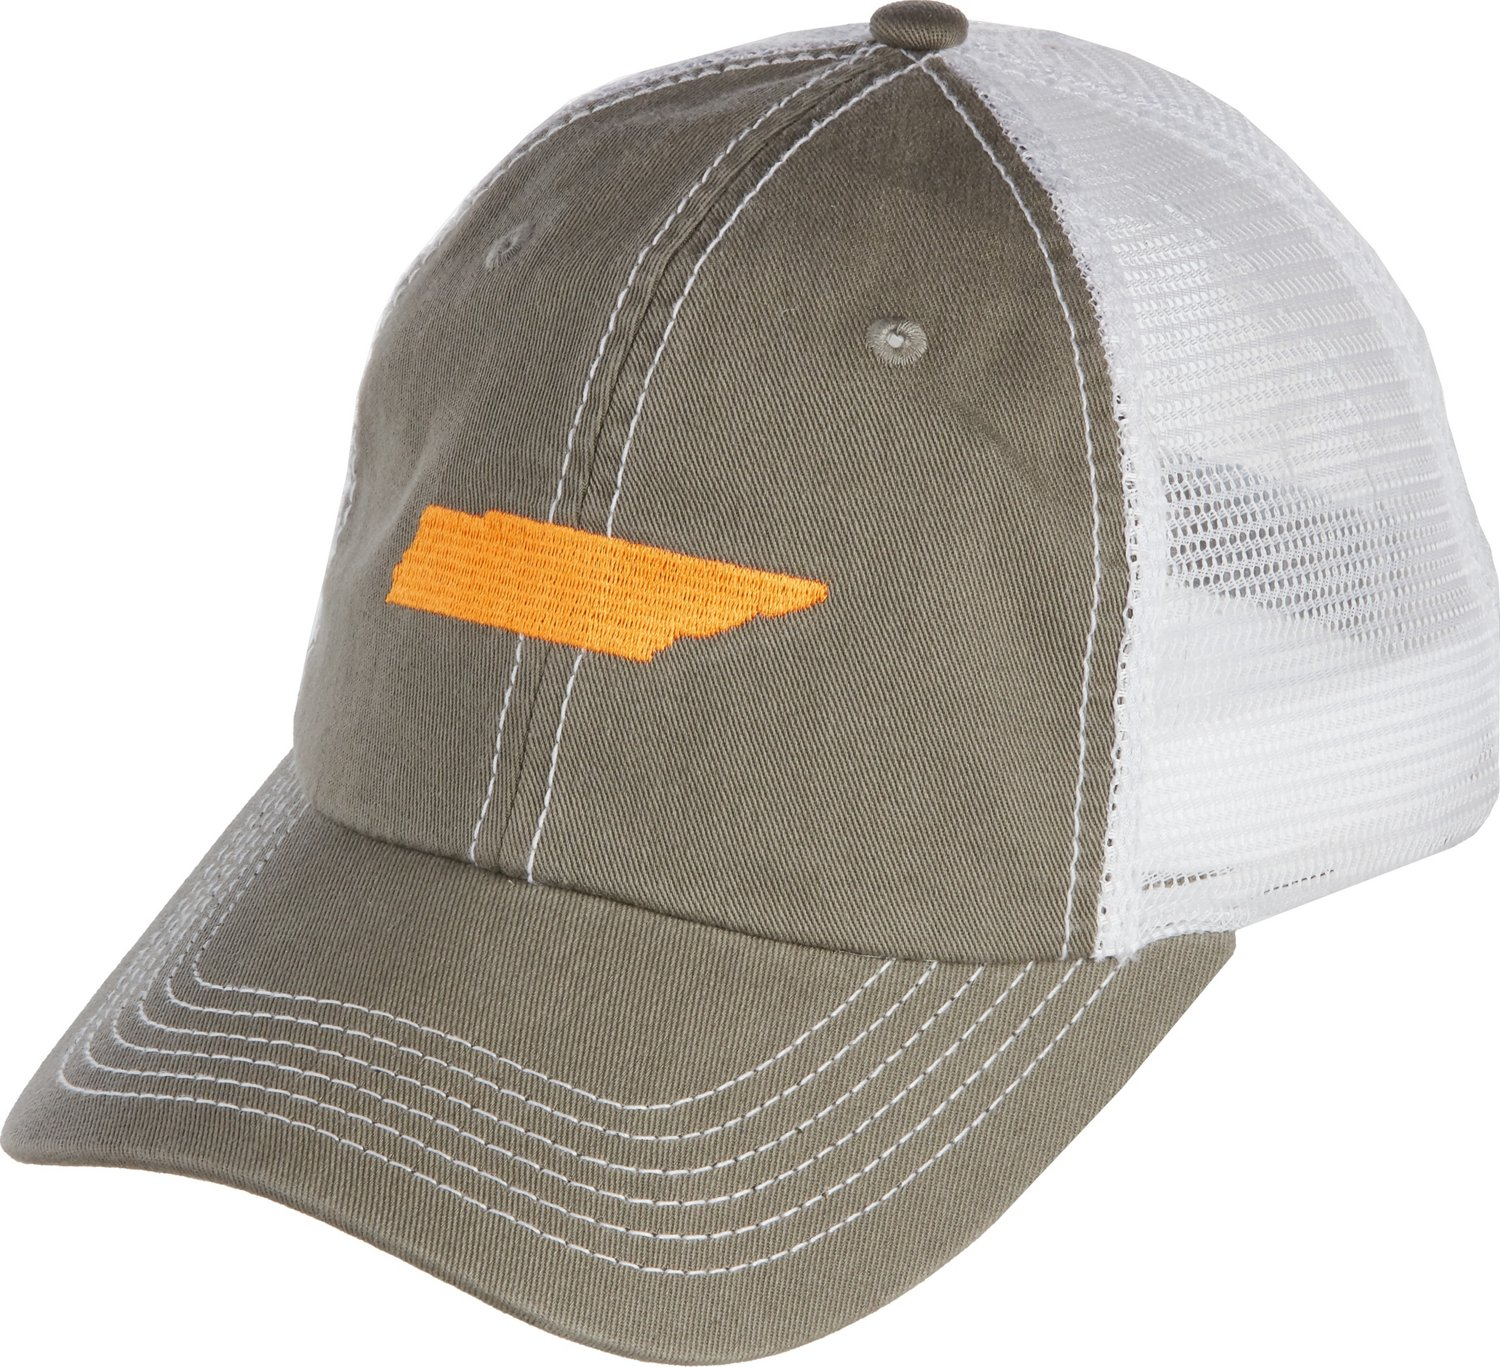 7a9f78e25c1906 Display product reviews for Academy Sports + Outdoors Men's State Trucker  Cap